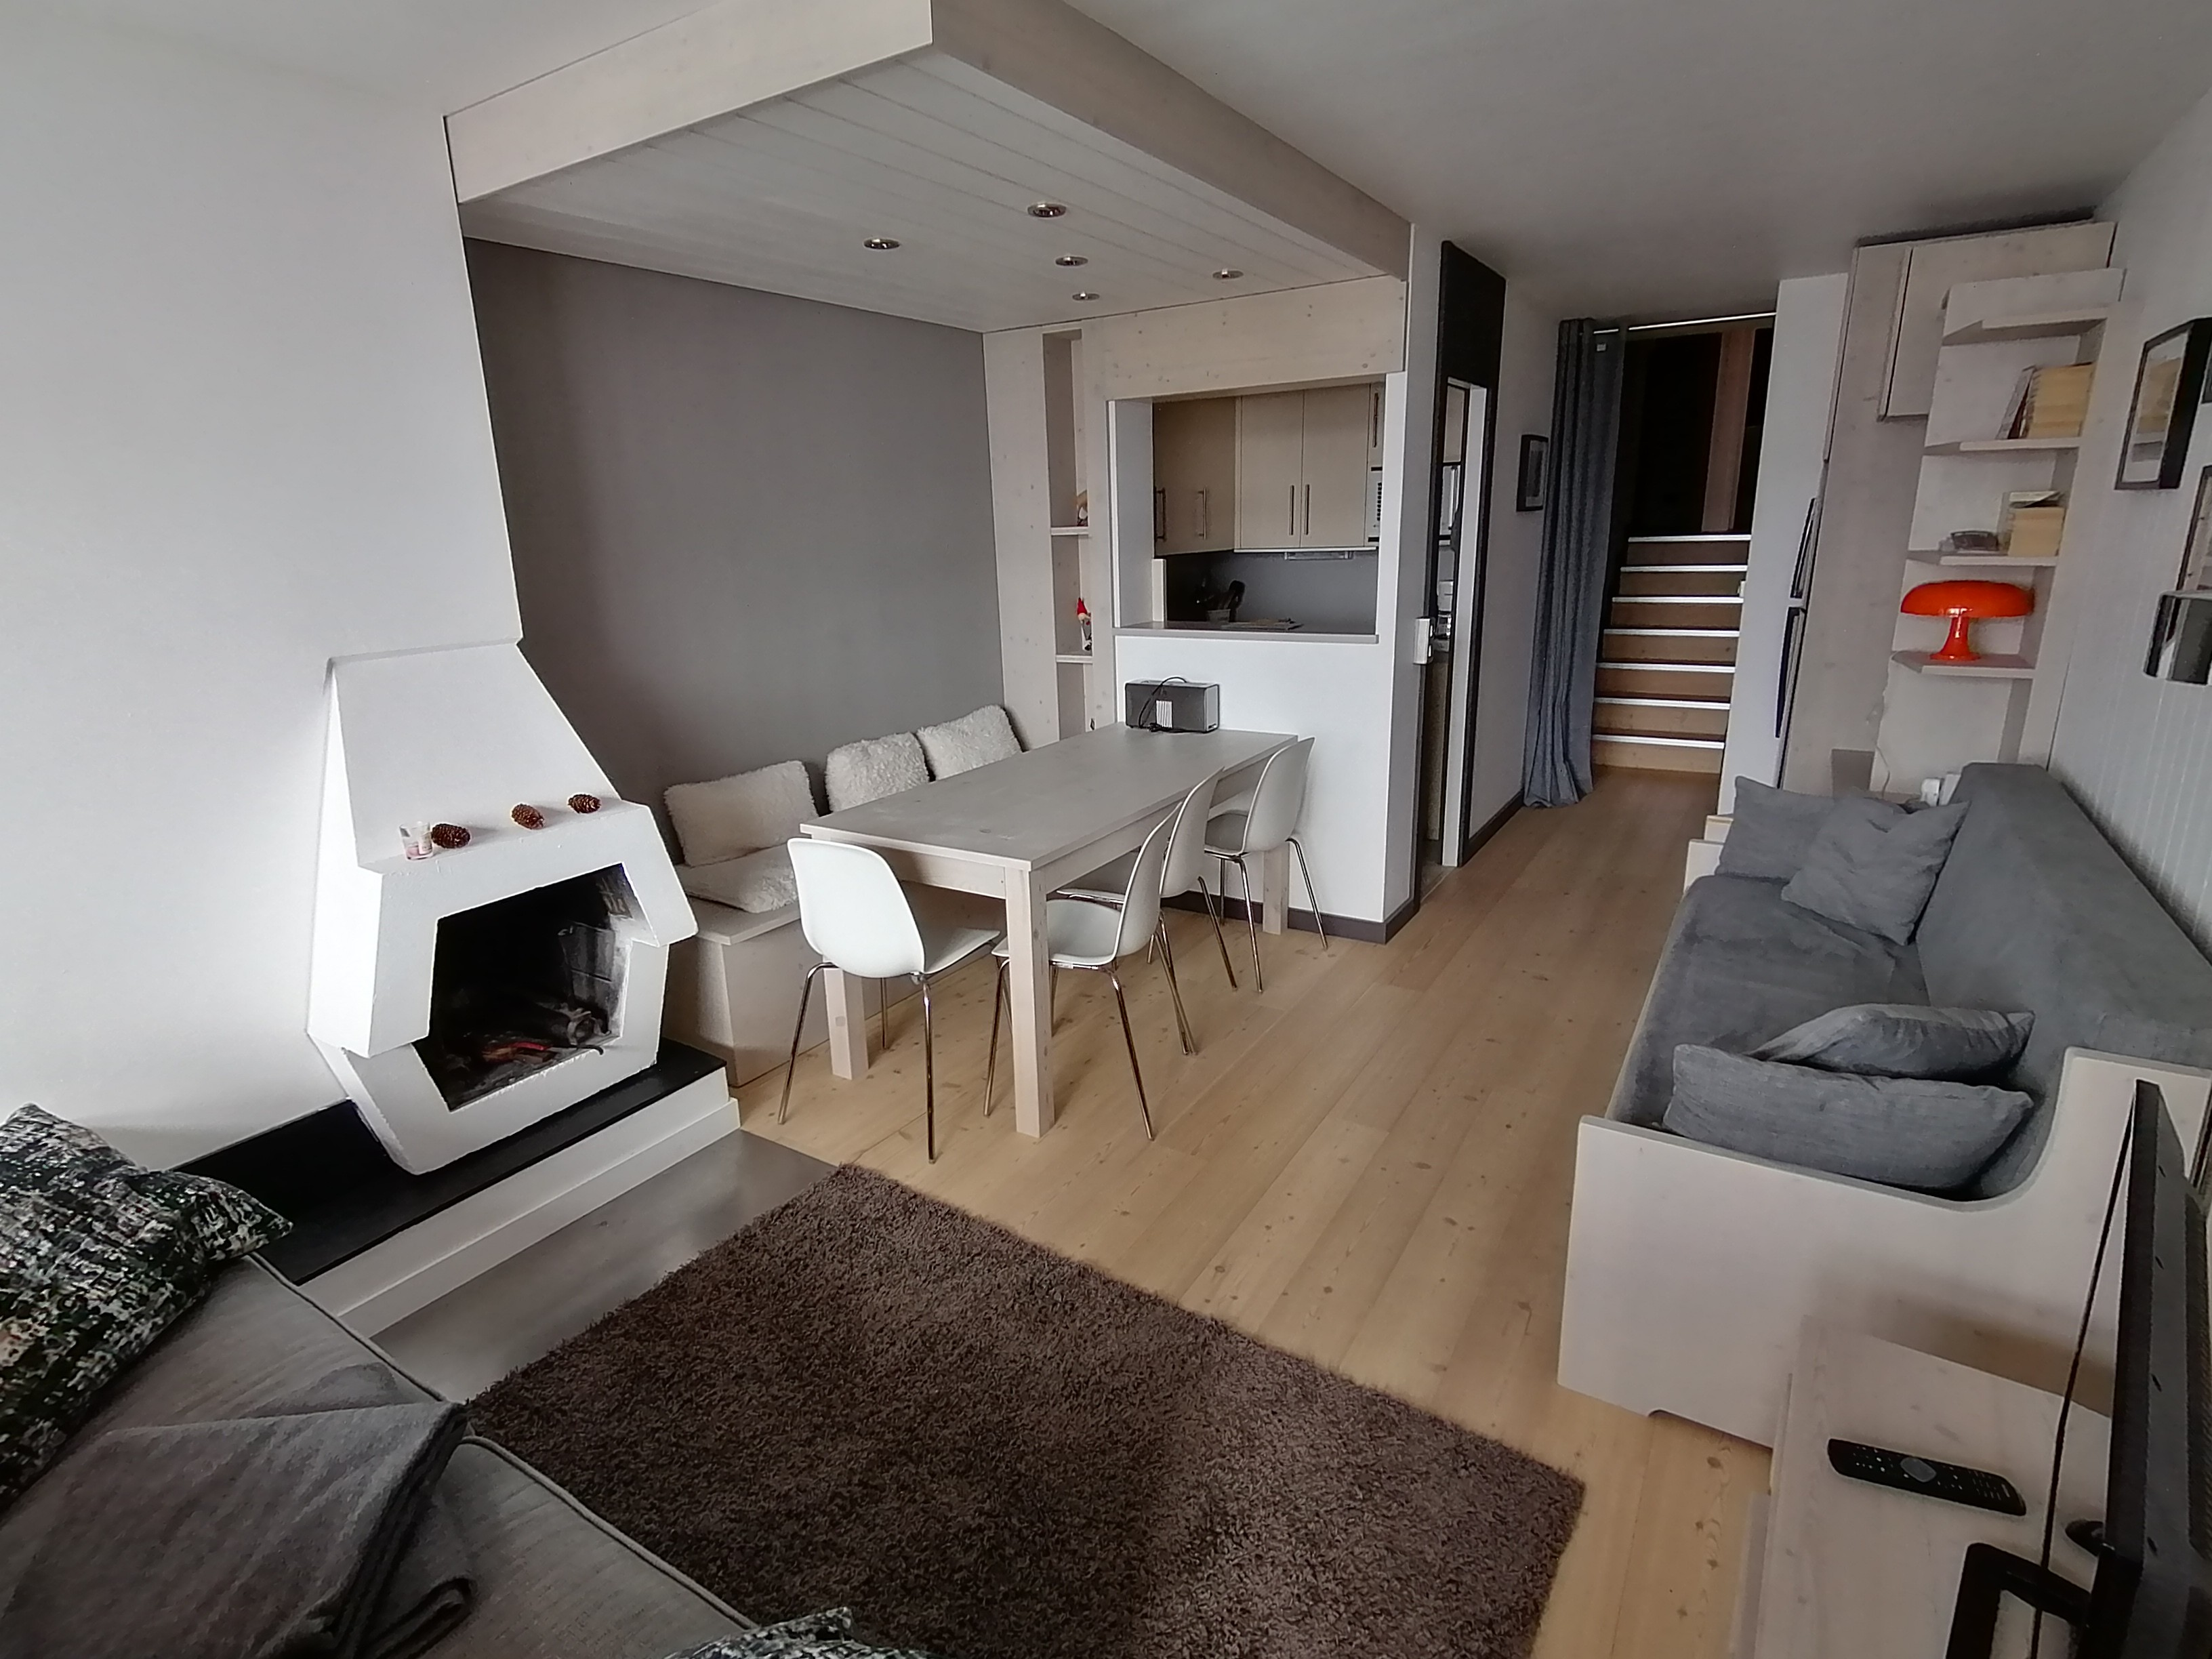 Avoriaz - Location appartement billy